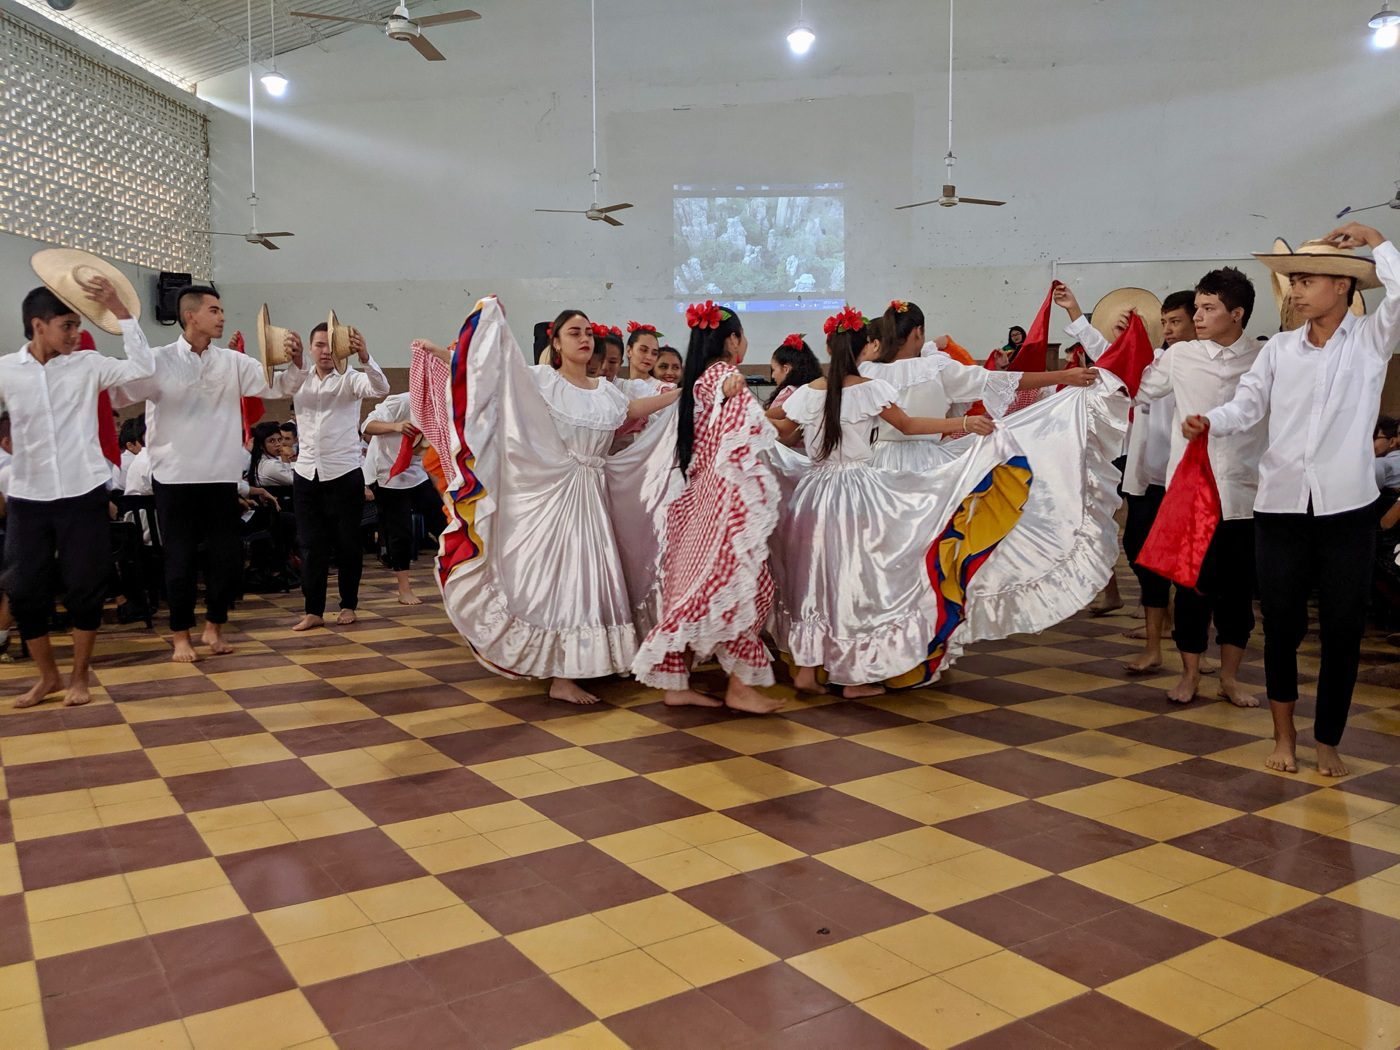 A cultural dance in Bogota performed by students.